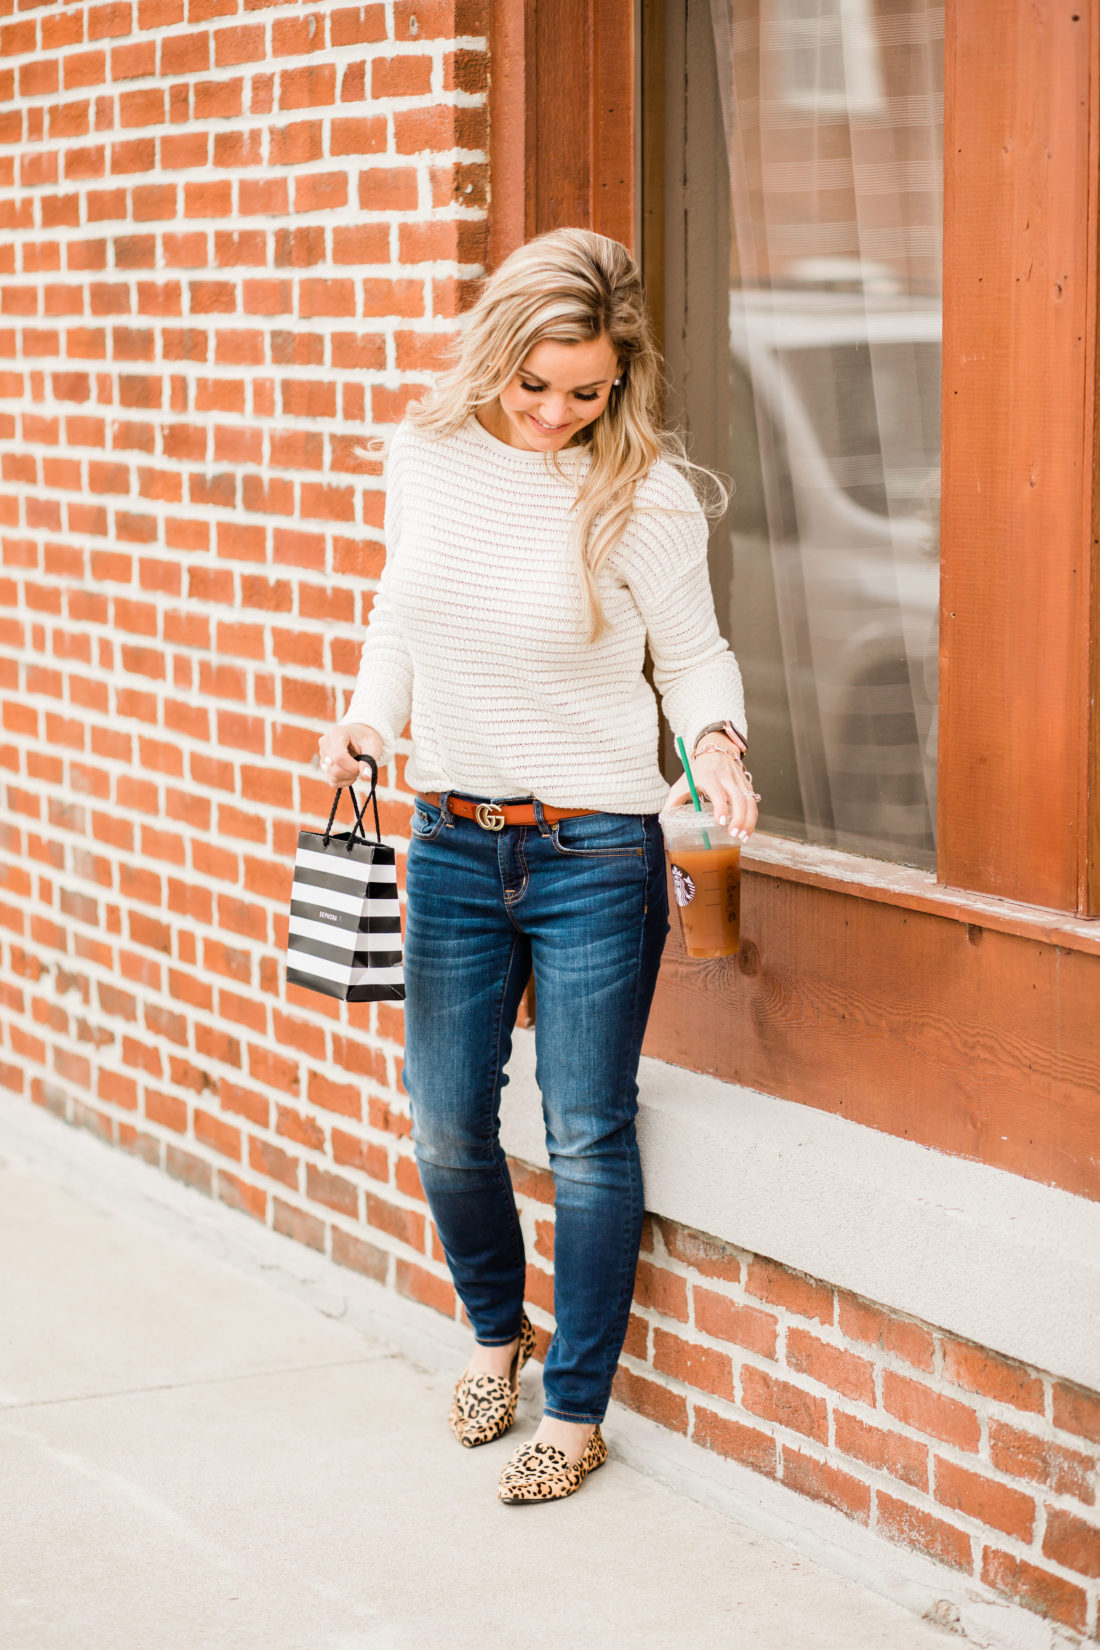 I love this look! Sweater, jeans, belt and leopard flats.